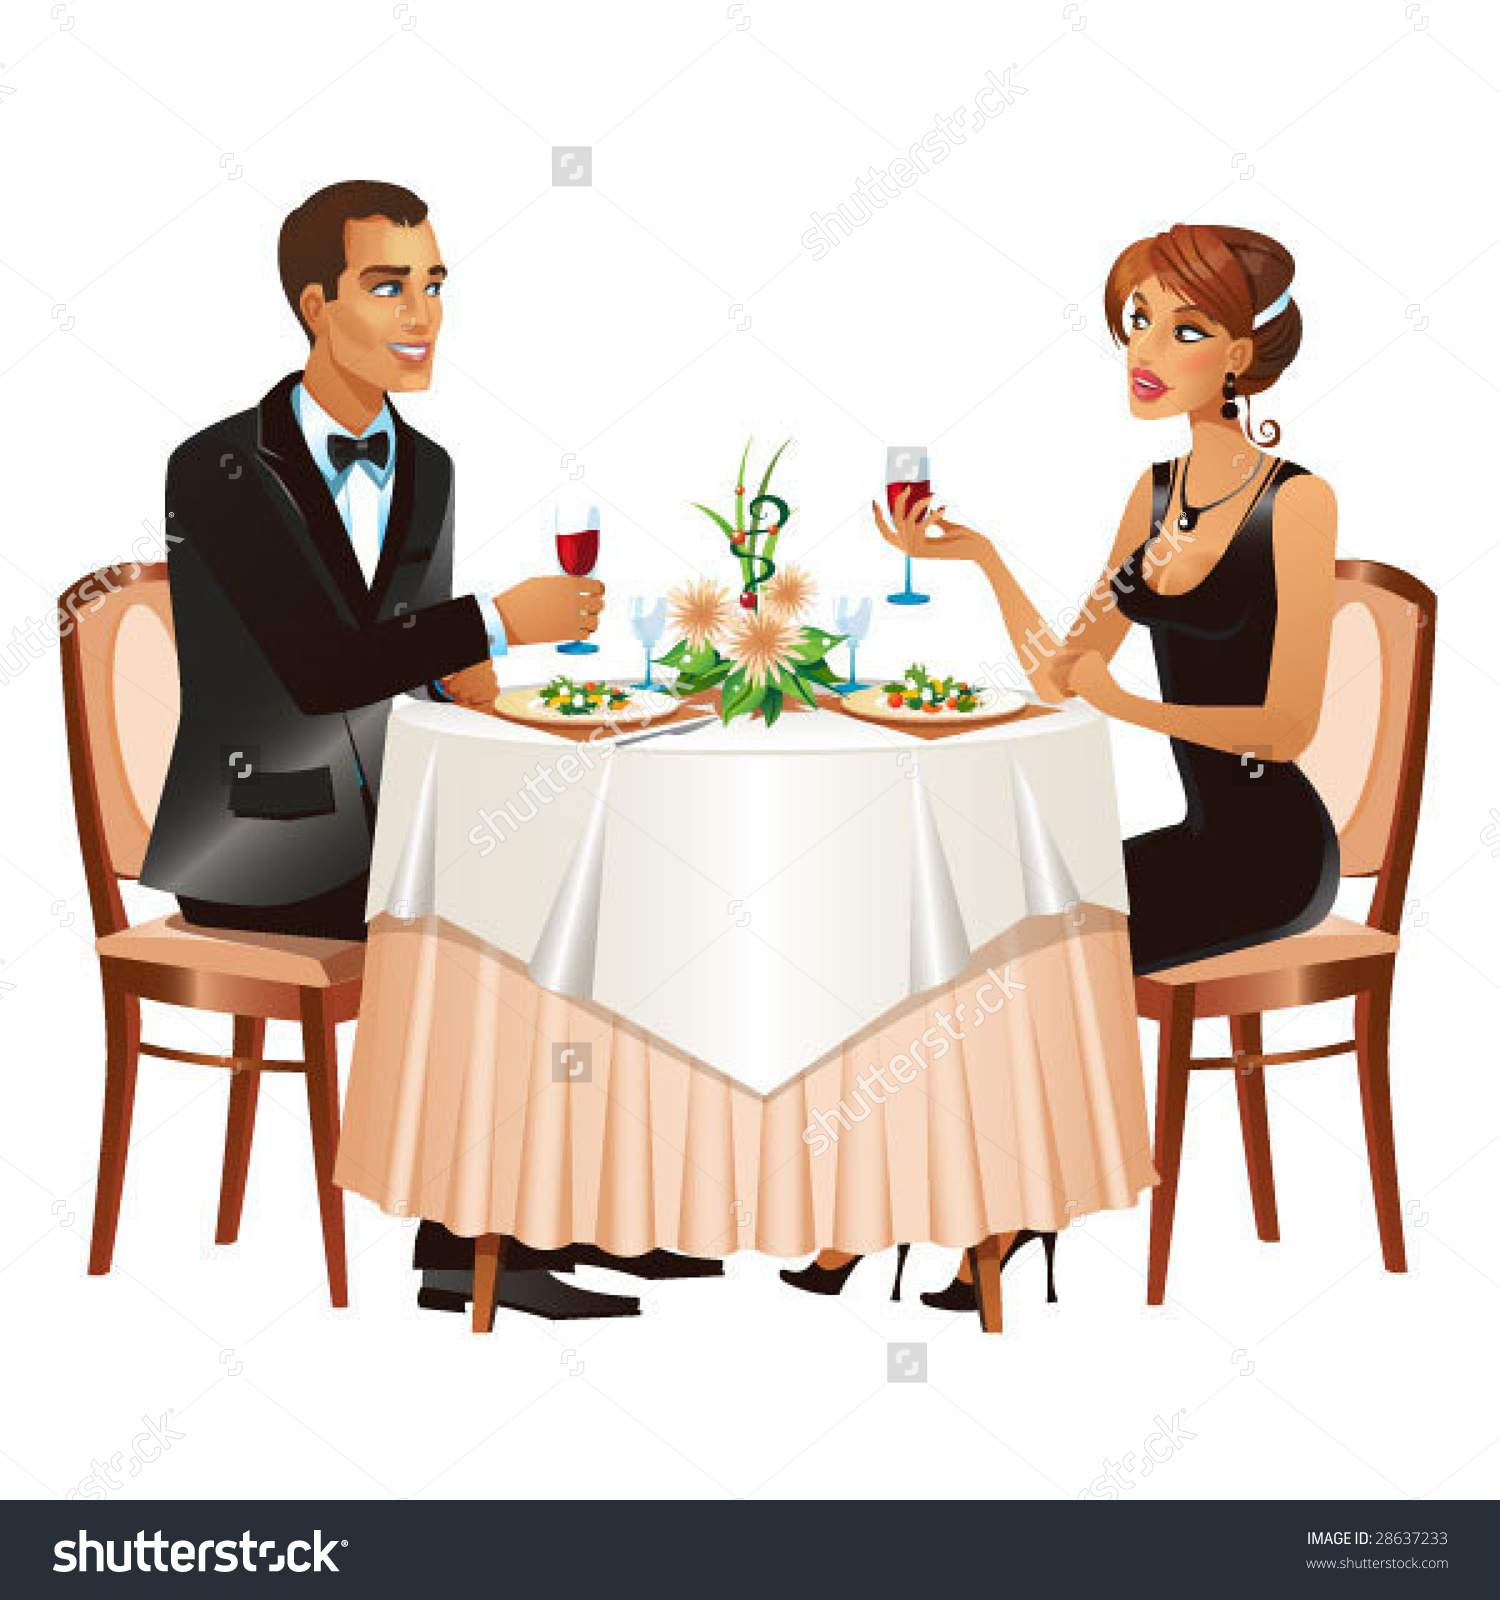 Man Woman Restaurant Beige Black White Stock Vector 28637233.